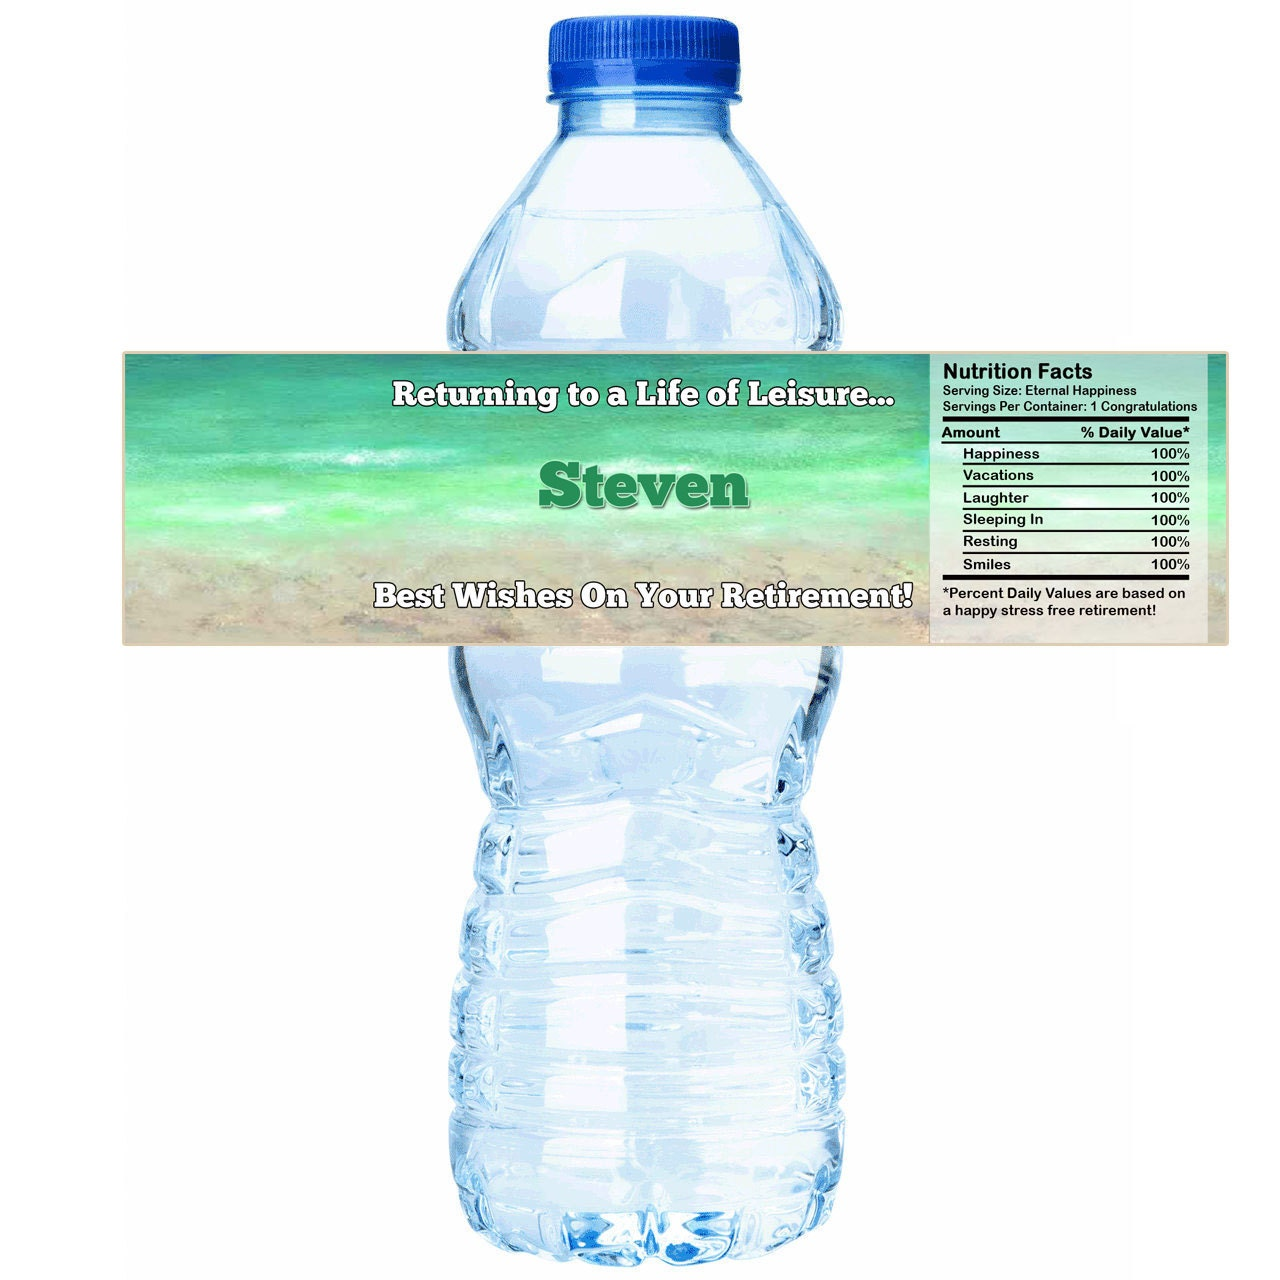 Personalized Retirement Leisure Water Bottle Labels